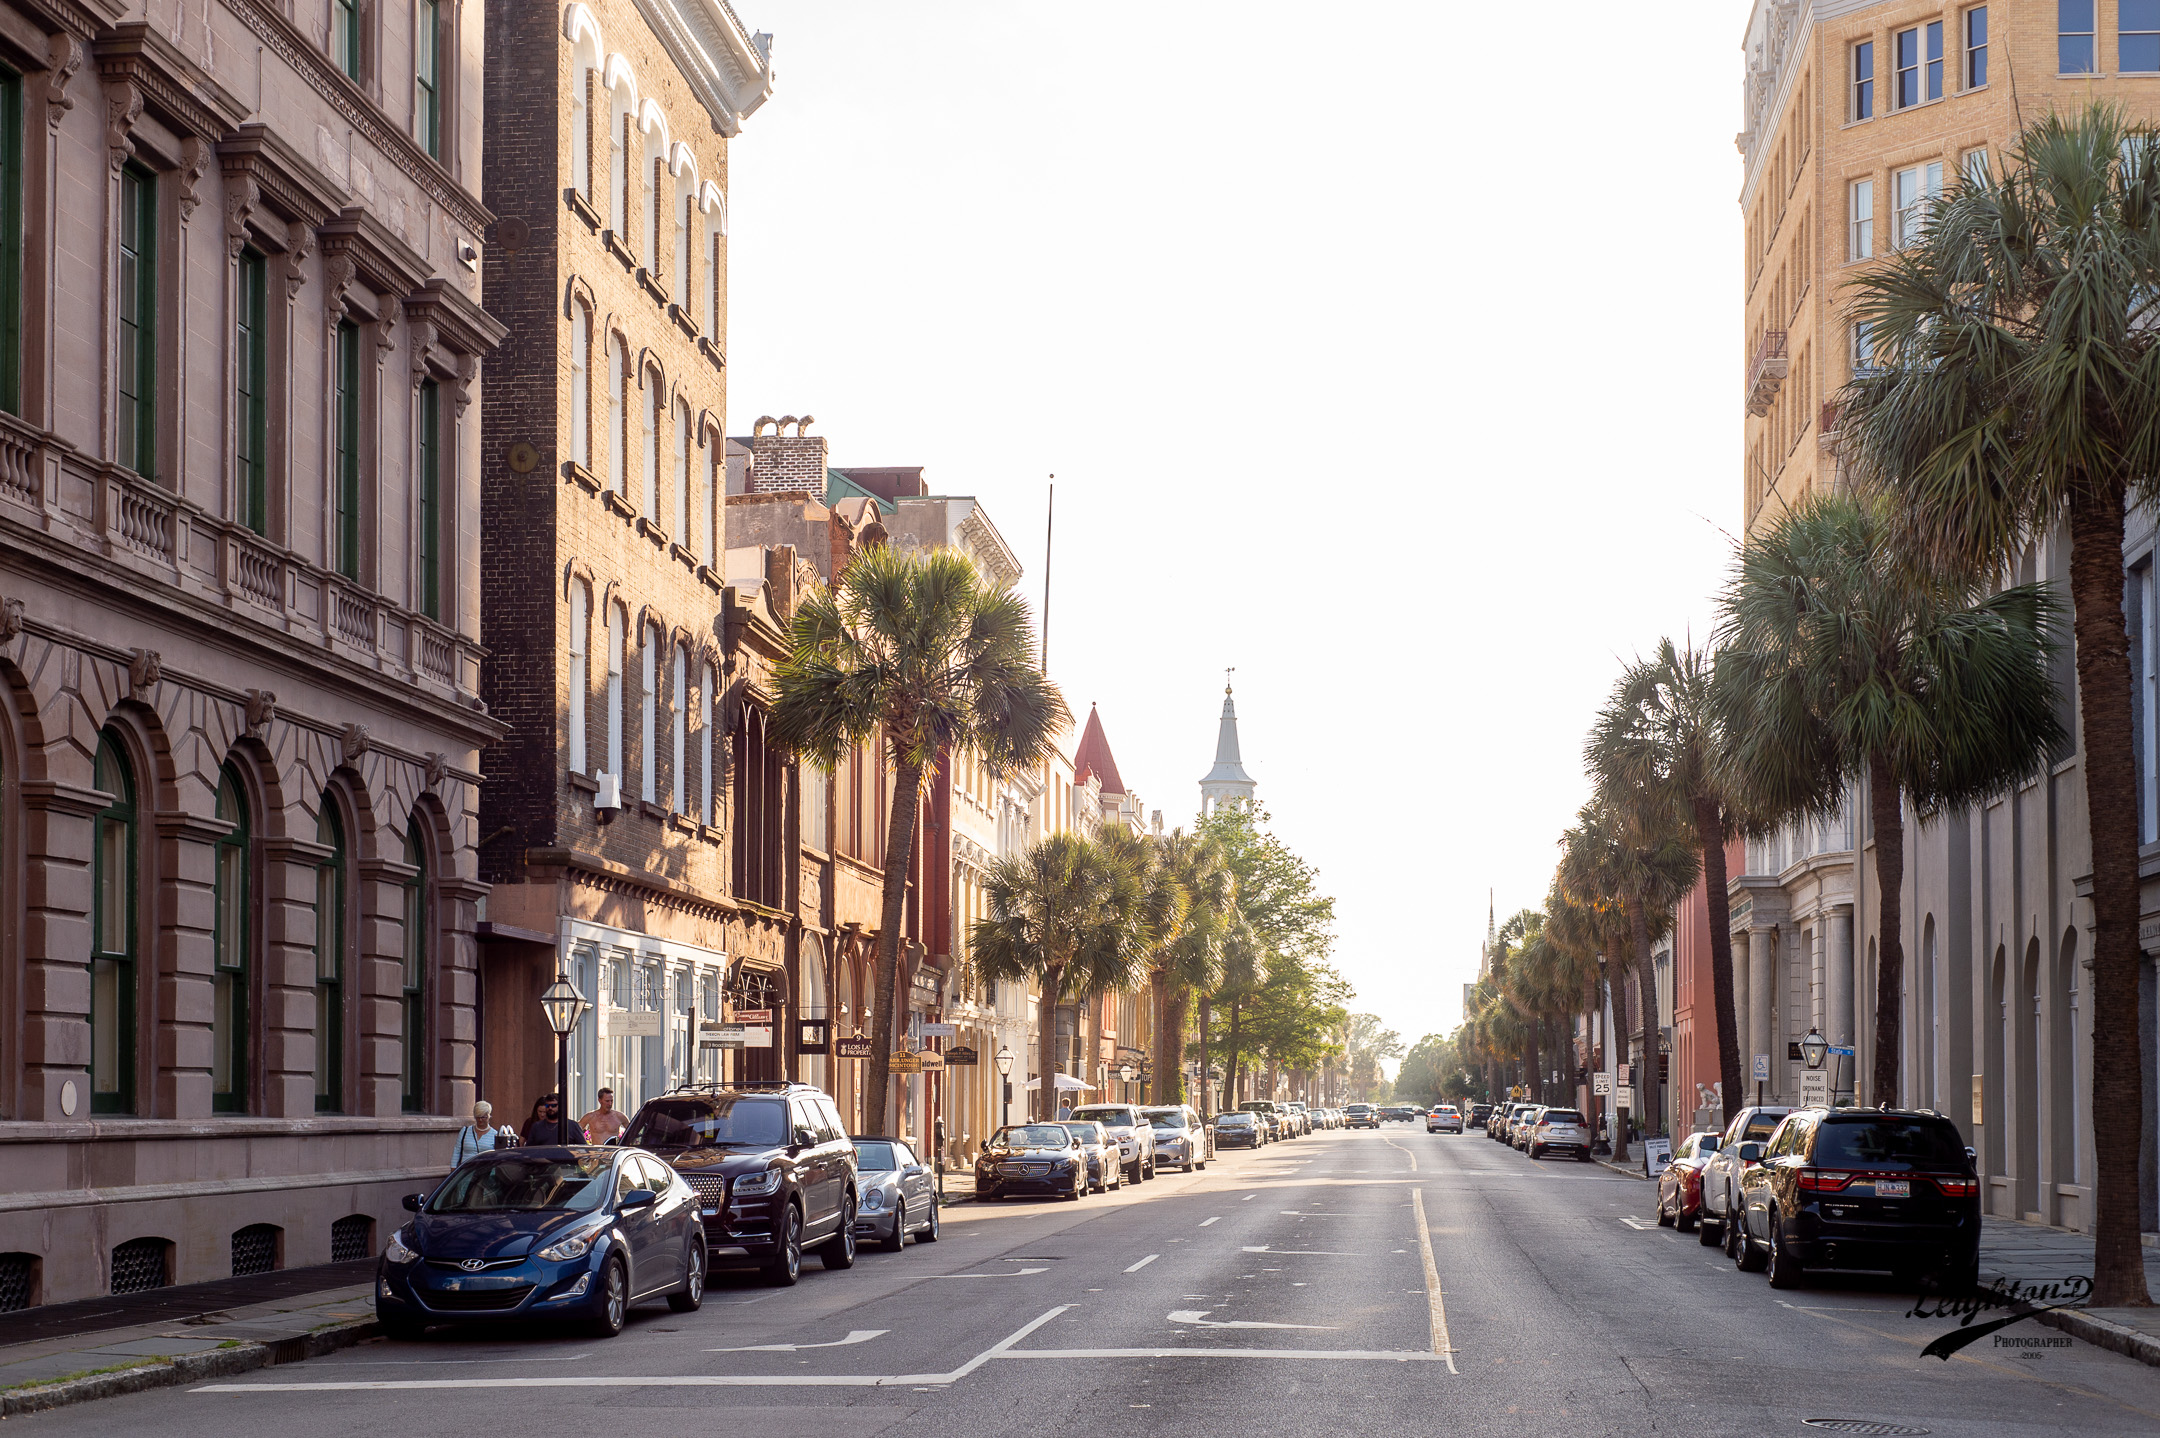 Charleston, SC at the corner of Broad and East Bay street.